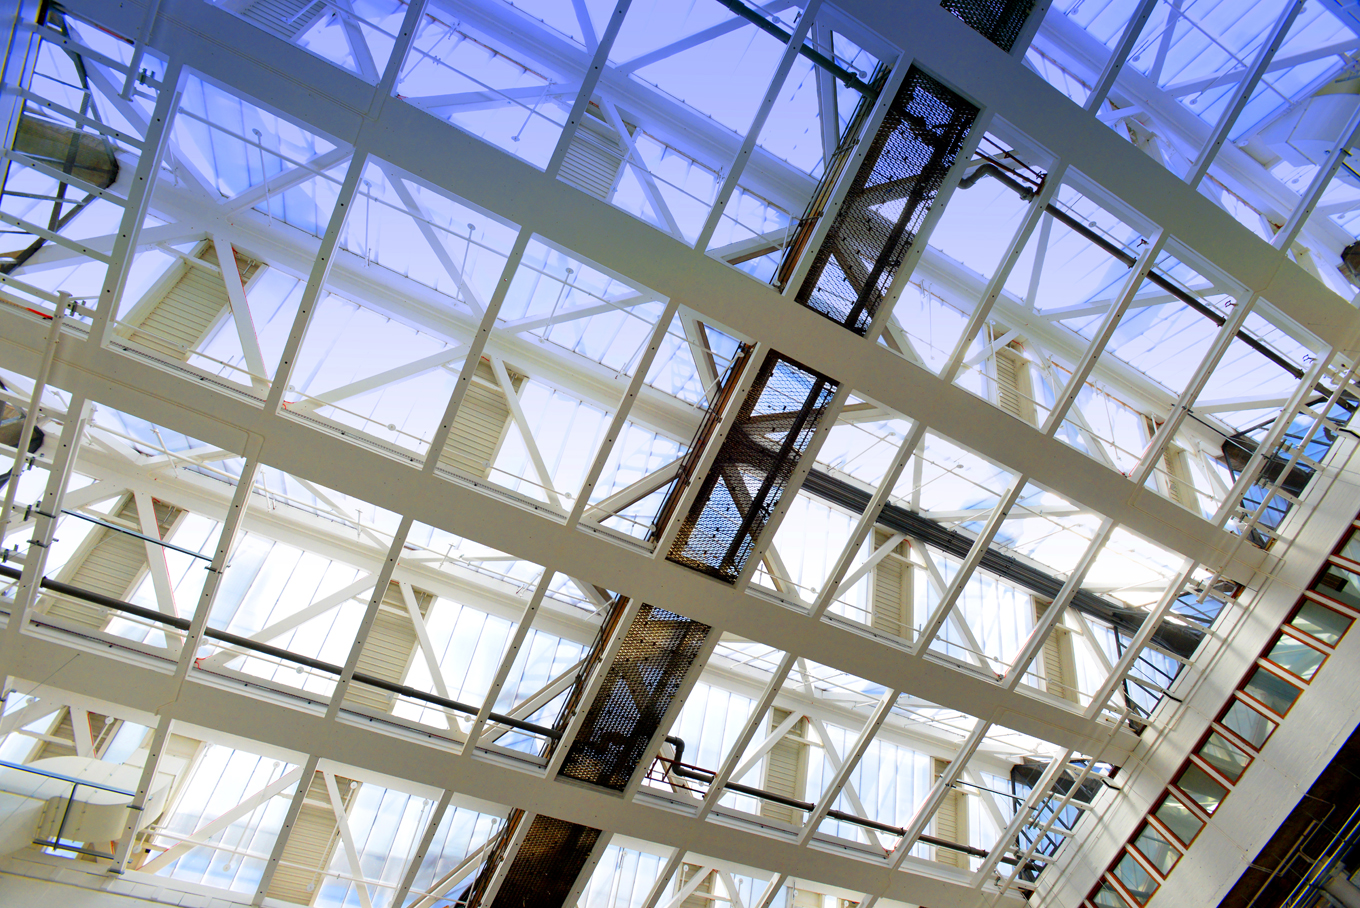 Velux-structural-glazing-2-BAA web image.jpg